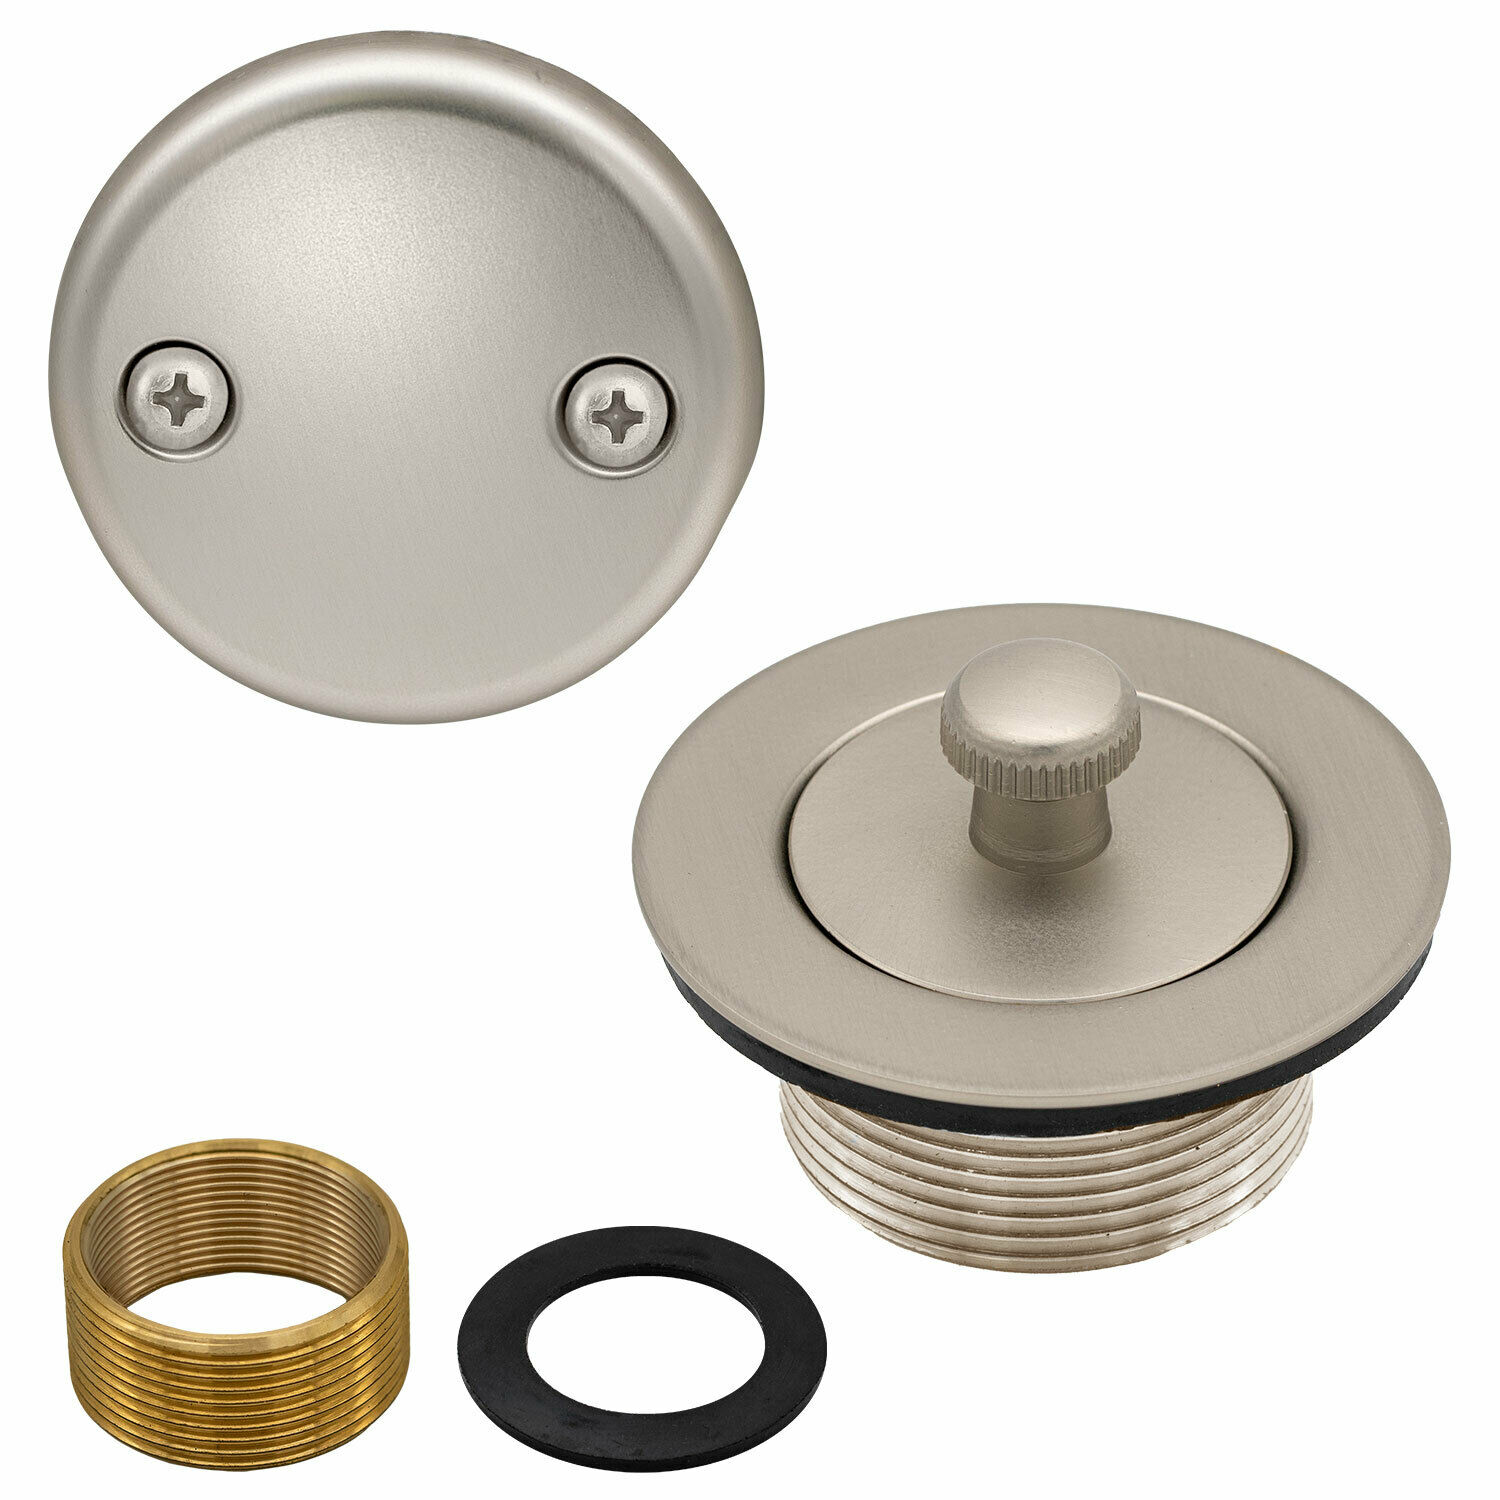 Lift and Turn Bathtub Replacement Tub Drain Overflow Cover Kit in Satin Nickel Bath